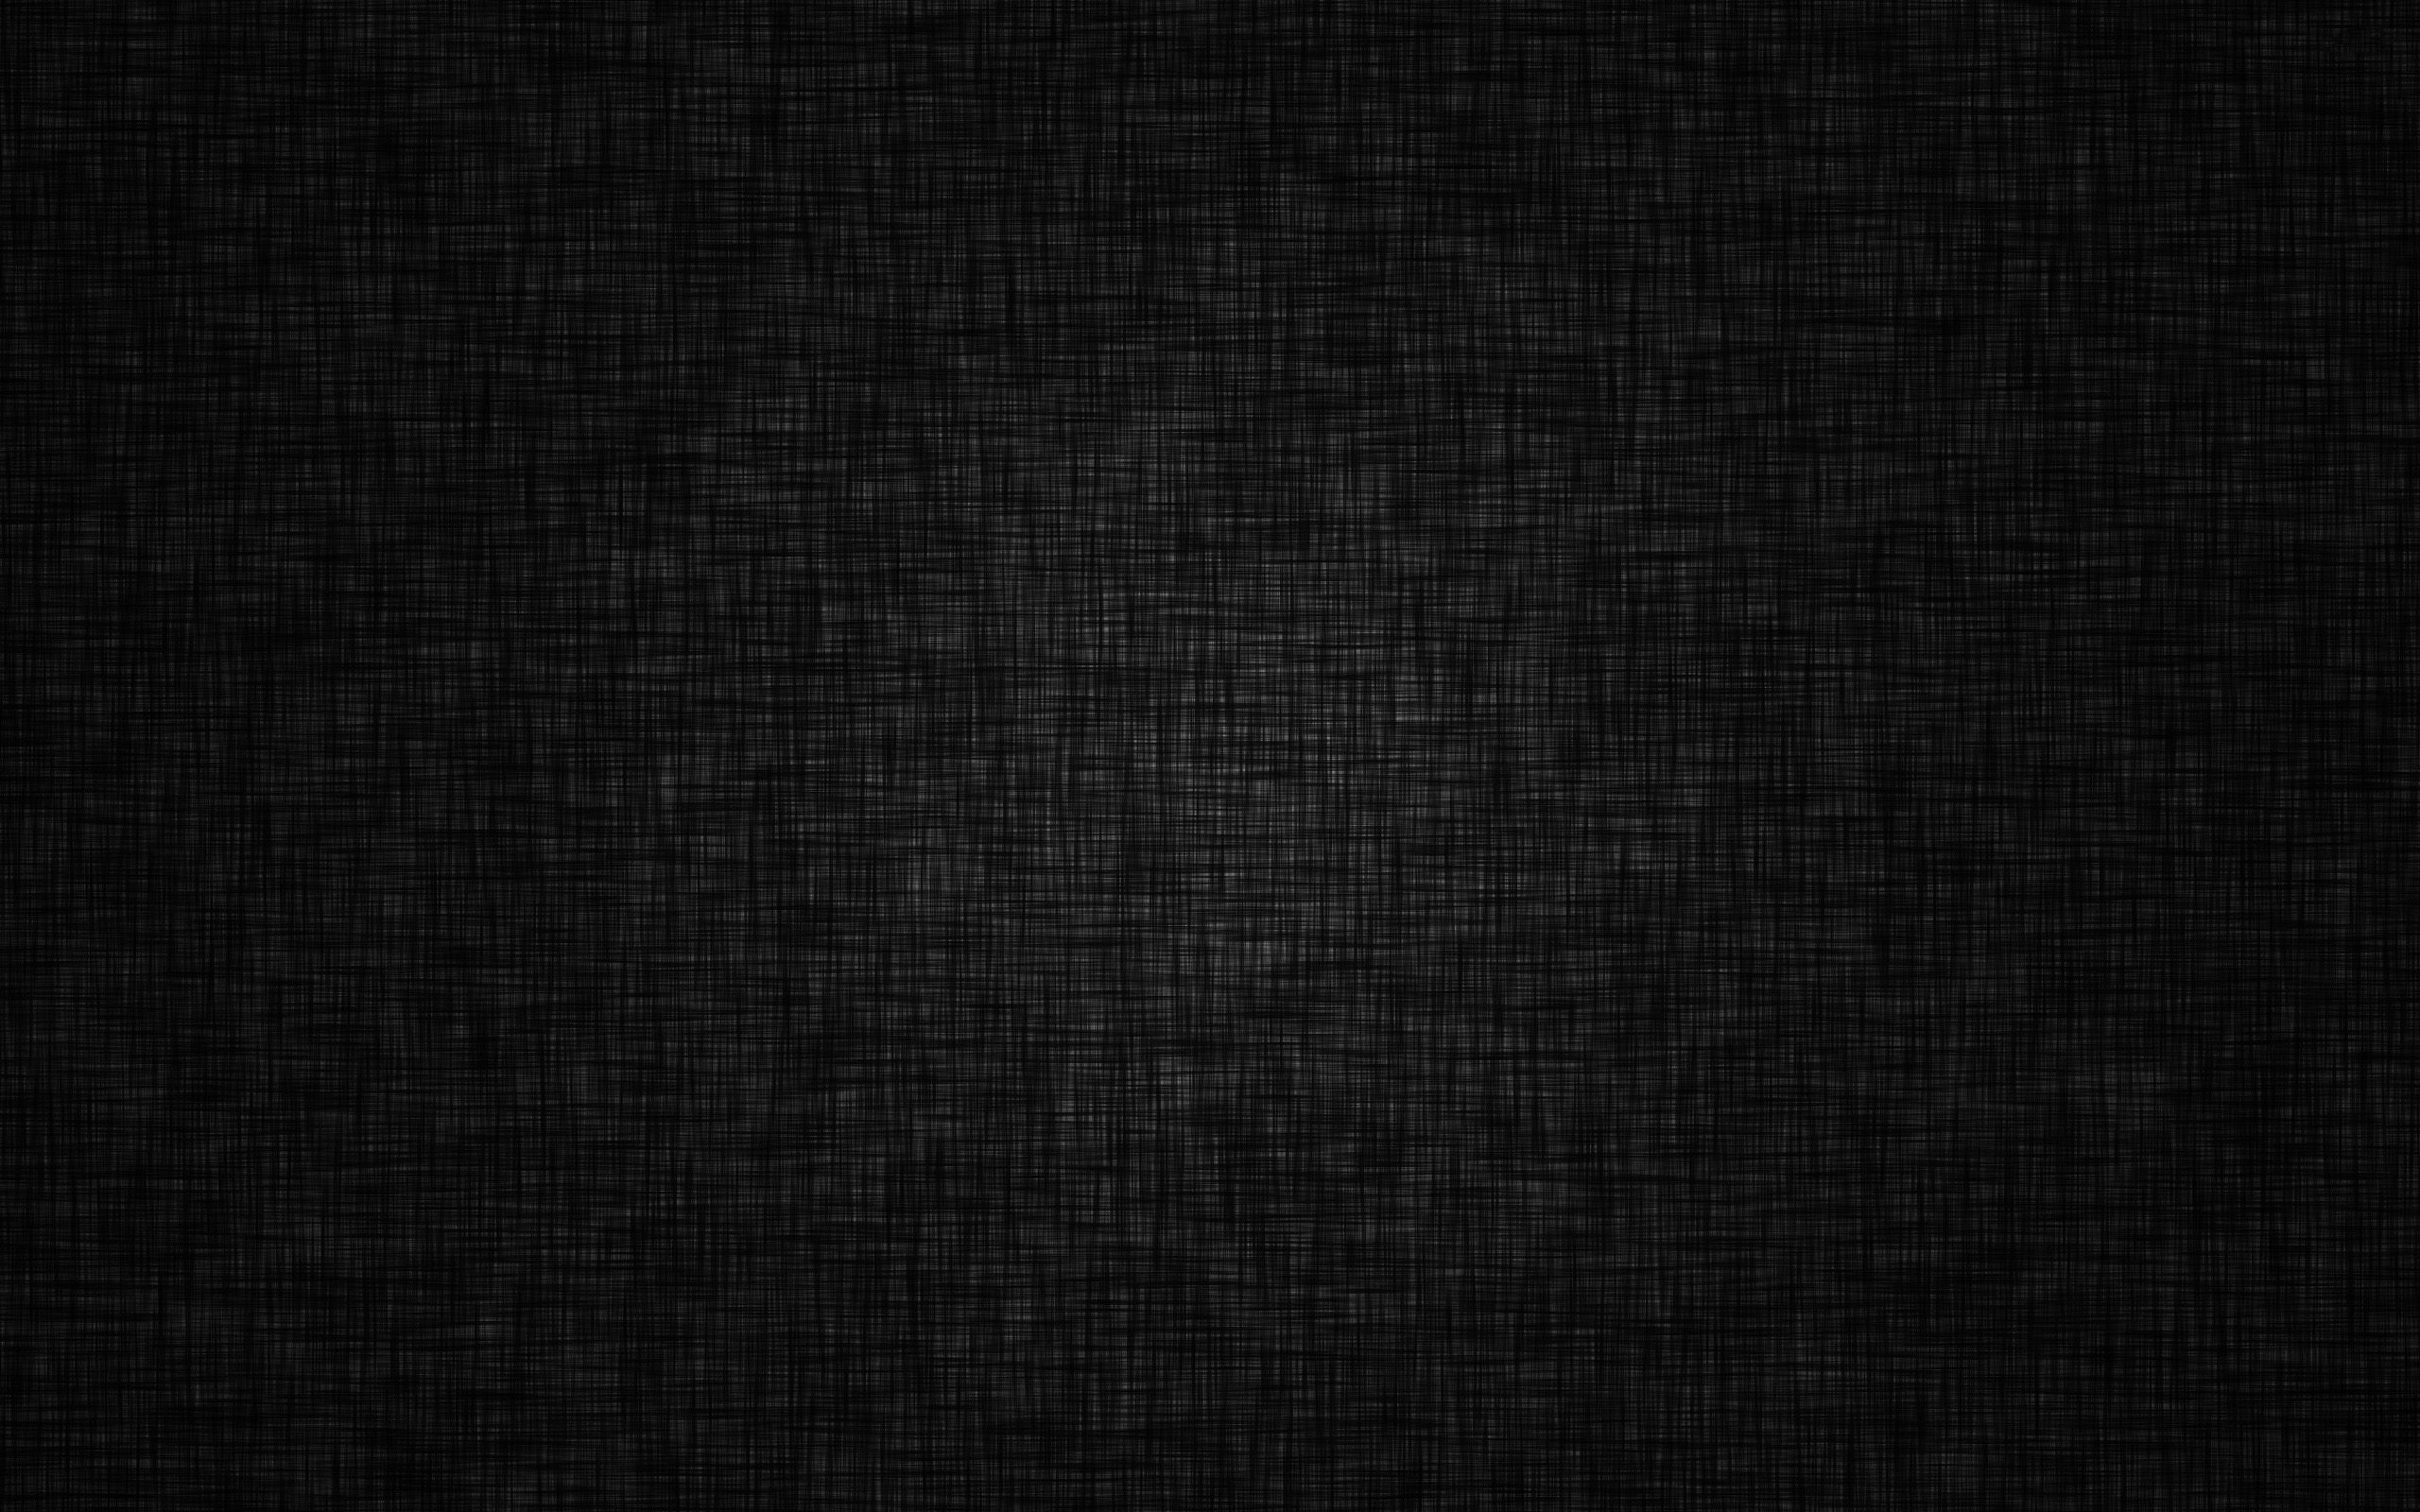 Black Crown Wallpaper Black Texture Background Awesome Pinterest Black